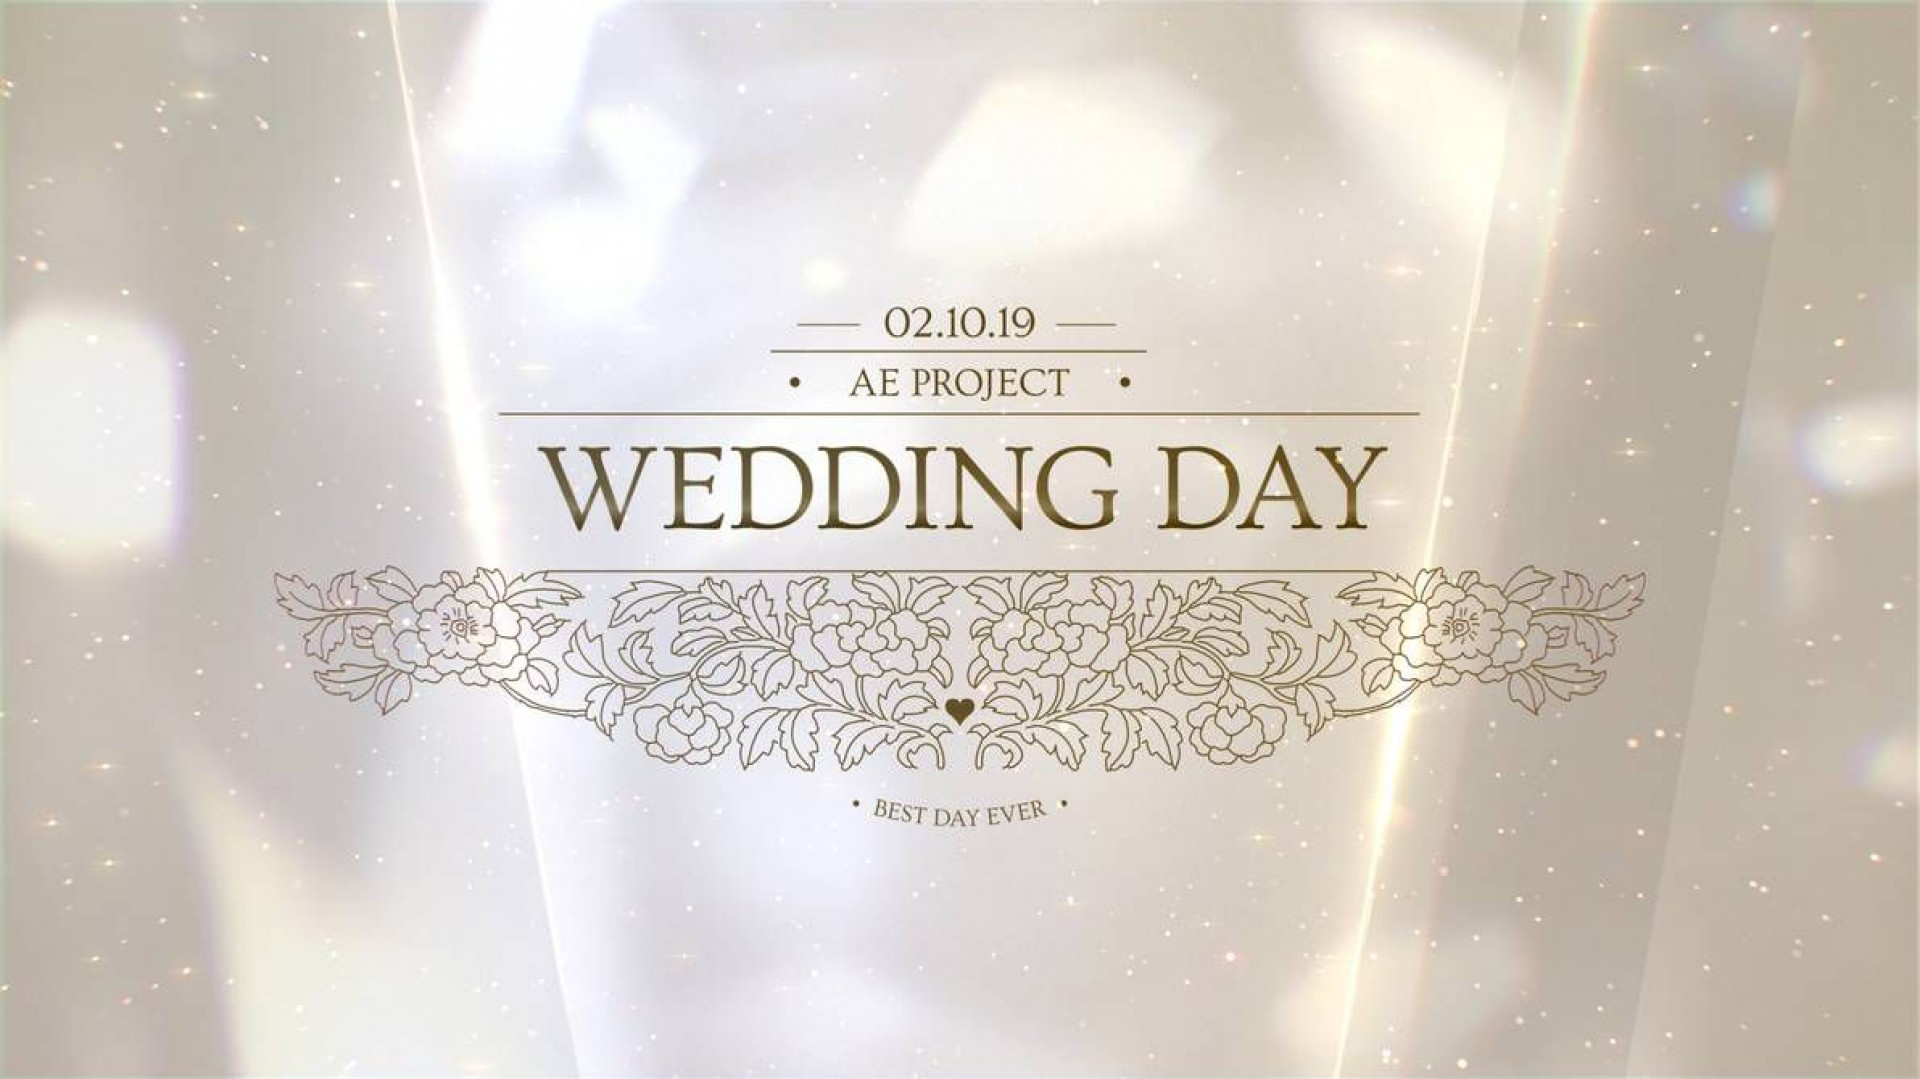 011 Astounding After Effect Wedding Template Image  Templates Free Download Cc Invitation1920